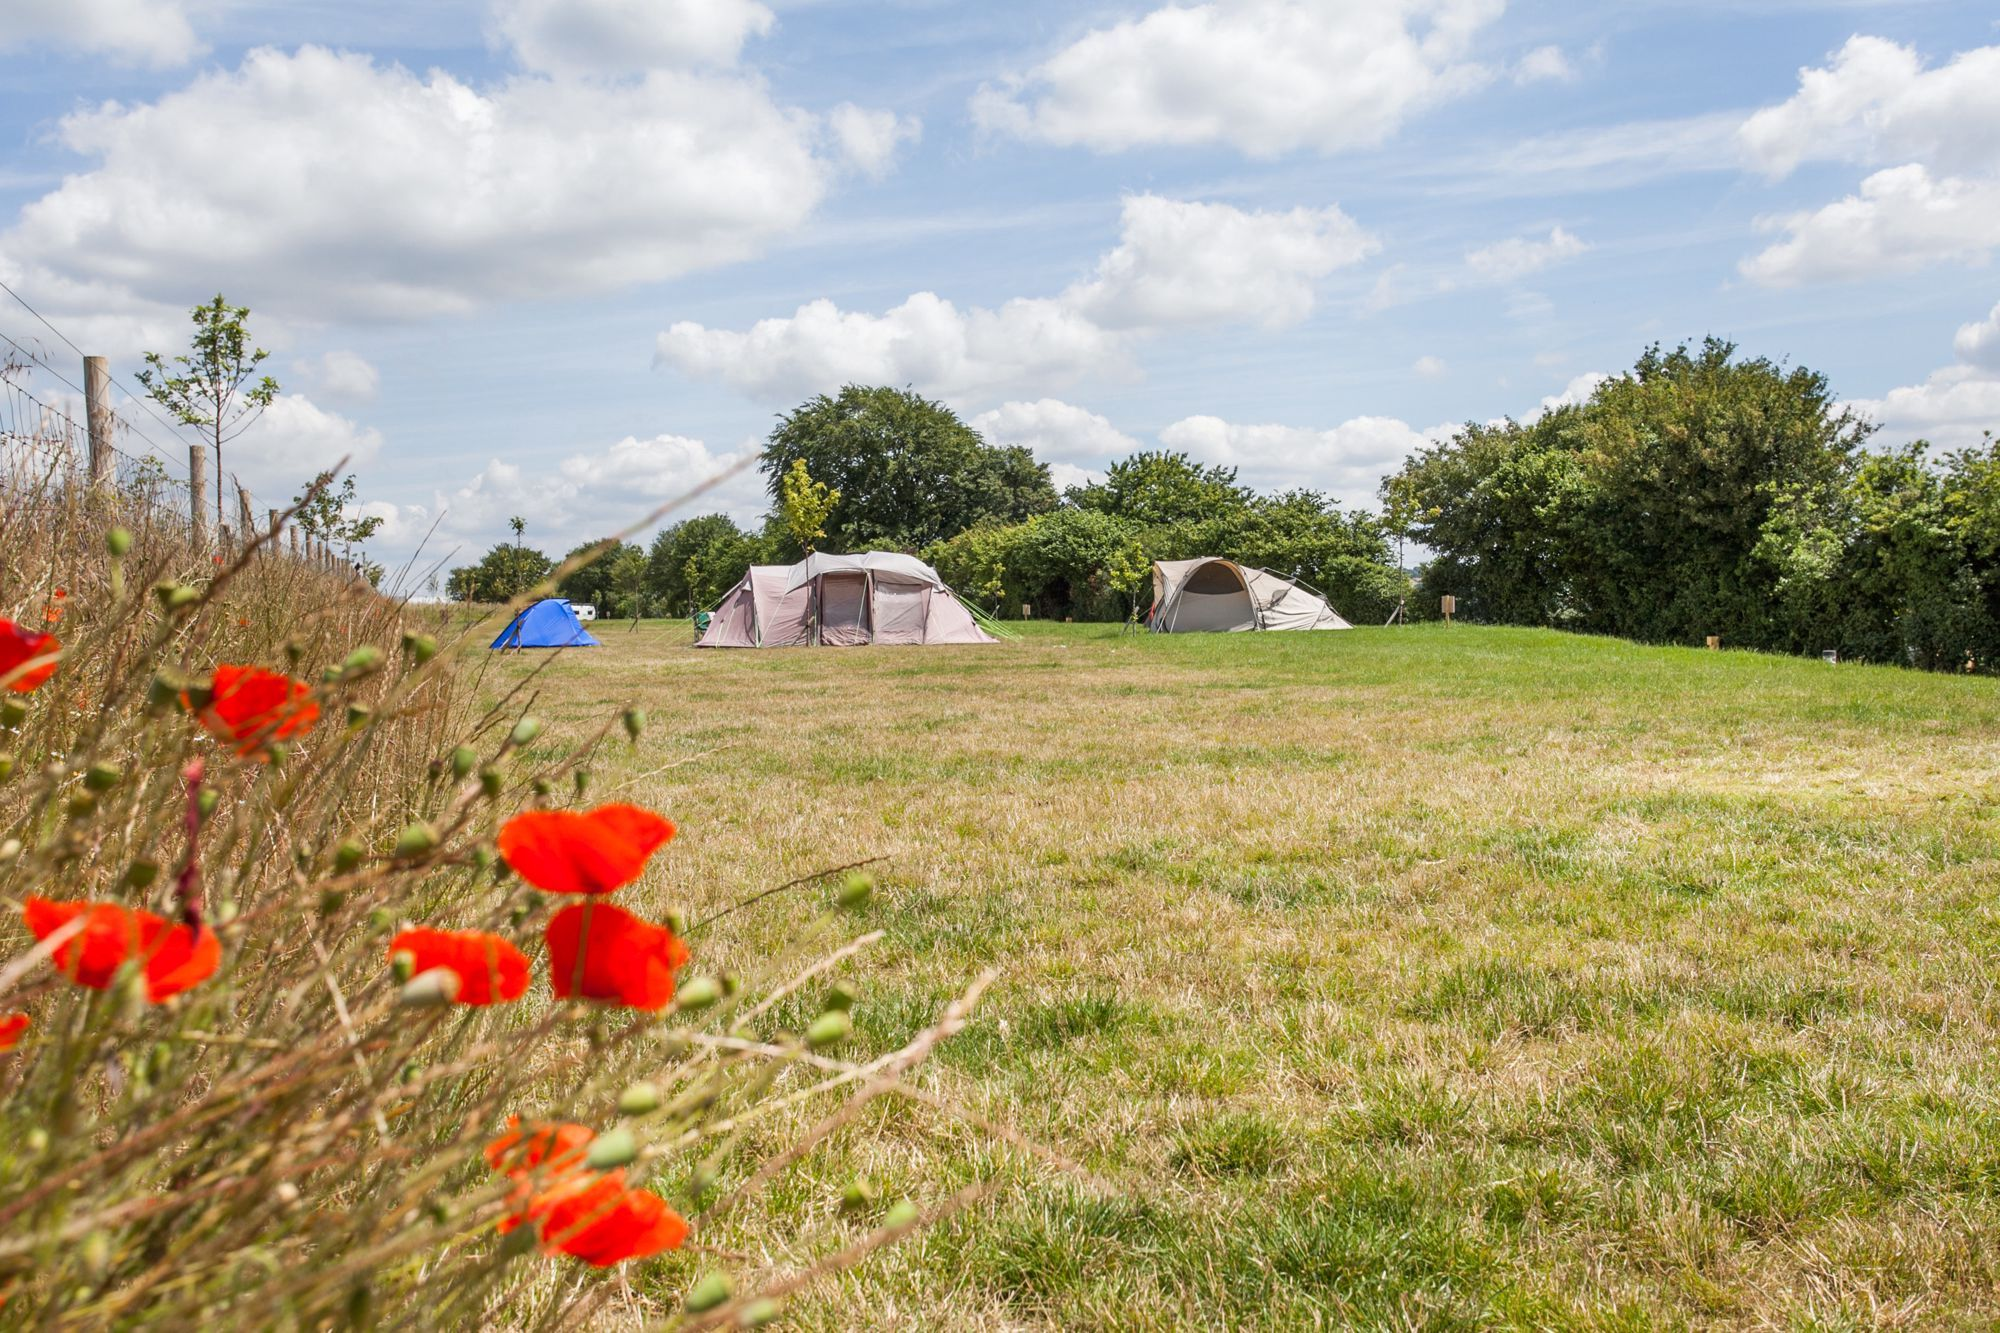 Campsites in the South Downs